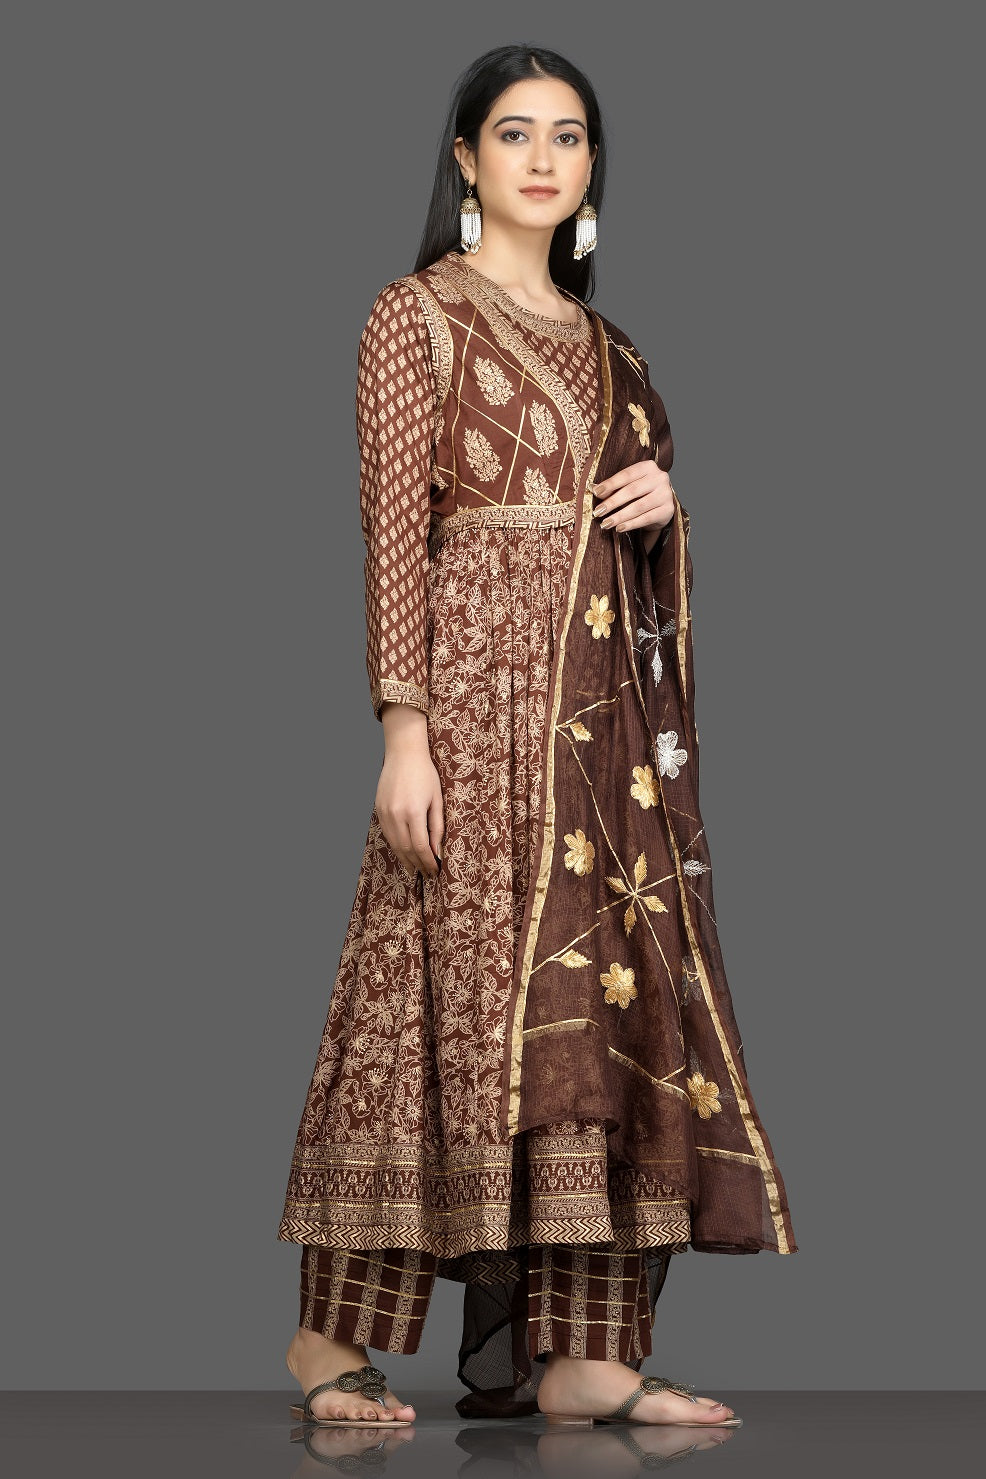 Buy beautiful brown printed silk Anarkali suit online in USA with waist jacket and dupatta. Shop for parties and festive occasions stunning designer suits, Anarkali suits, designer gowns, wedding lehengas from Pure Elegance Indian fashion store in USA.-side